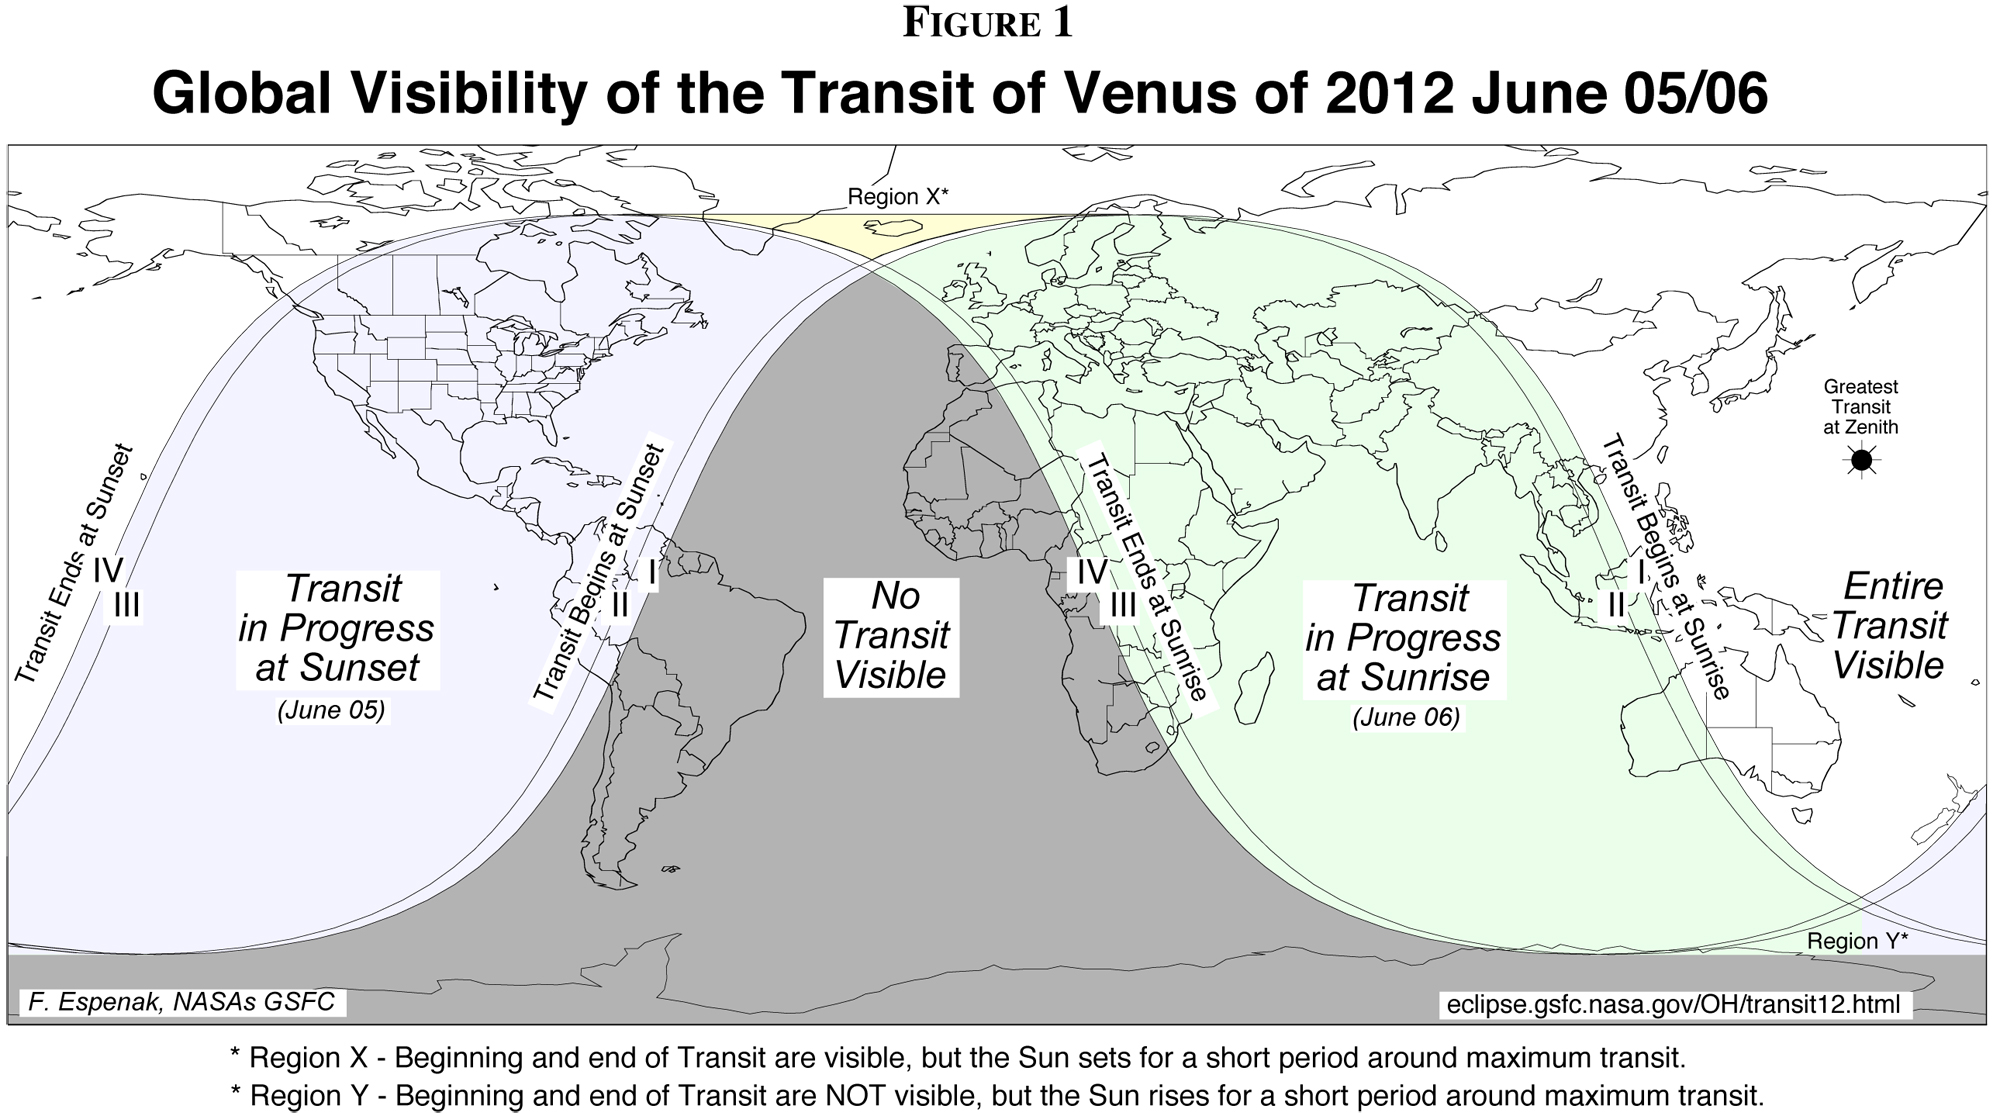 Venus Transit 2012 Global Visibility Map